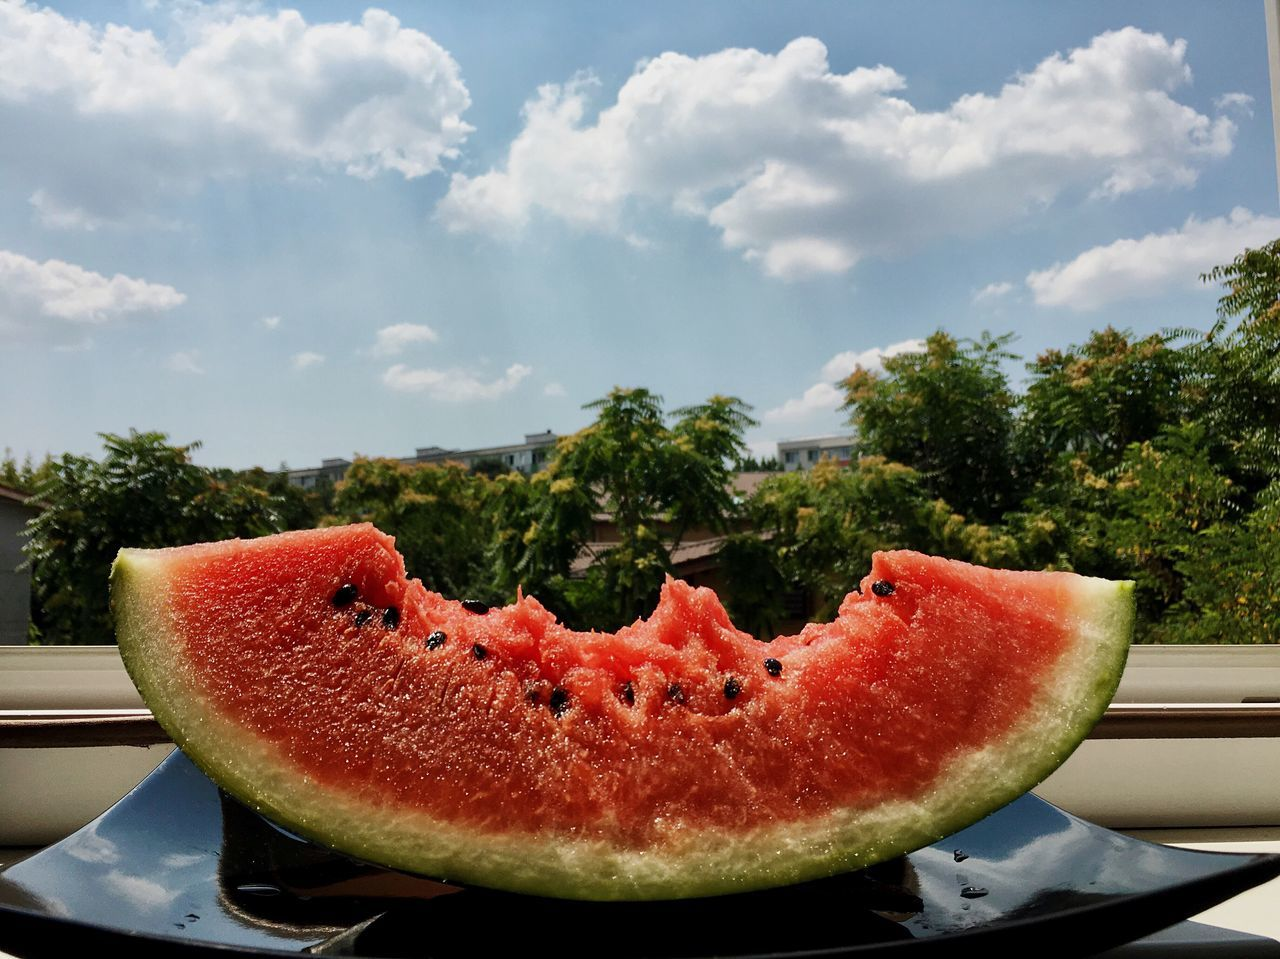 slice, fruit, watermelon, healthy eating, food and drink, freshness, no people, food, cross section, day, table, sky, close-up, tree, outdoors, nature, eaten, ready-to-eat